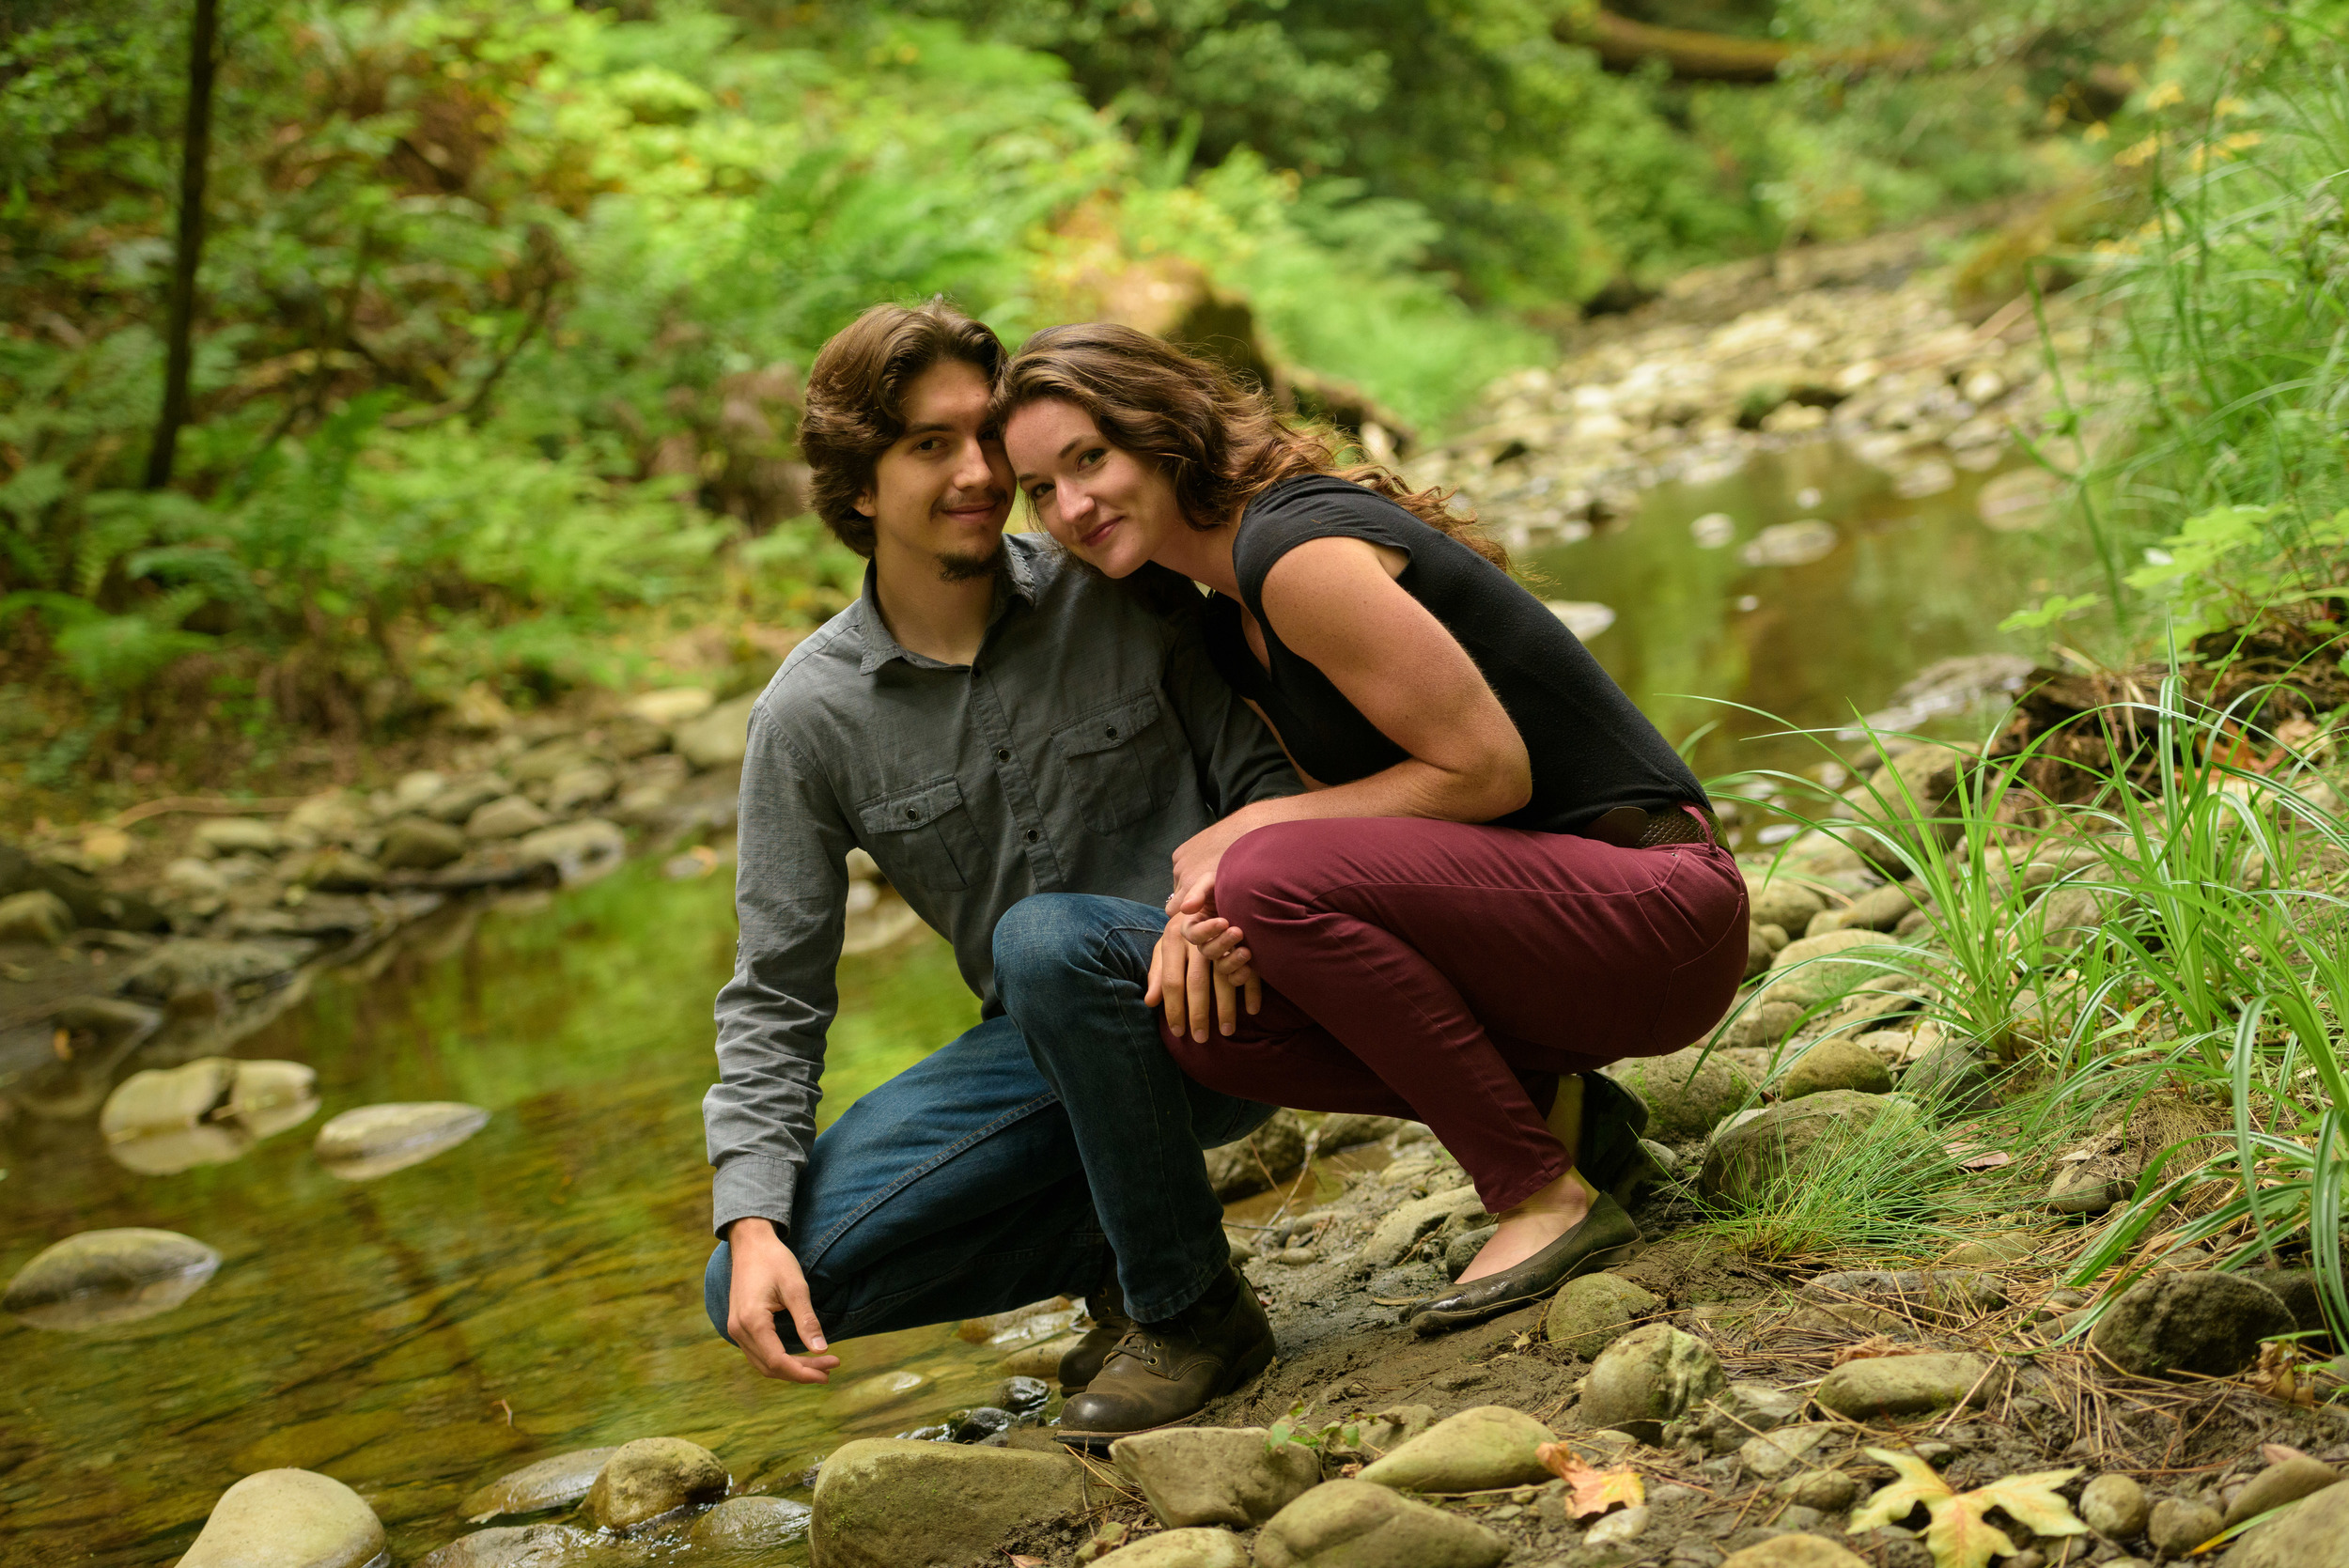 Couple crouching next to creek - Engagement Photos in Nisene Marks Forest in Aptos, CA - by Bay Area wedding photographer Chris Schmauch